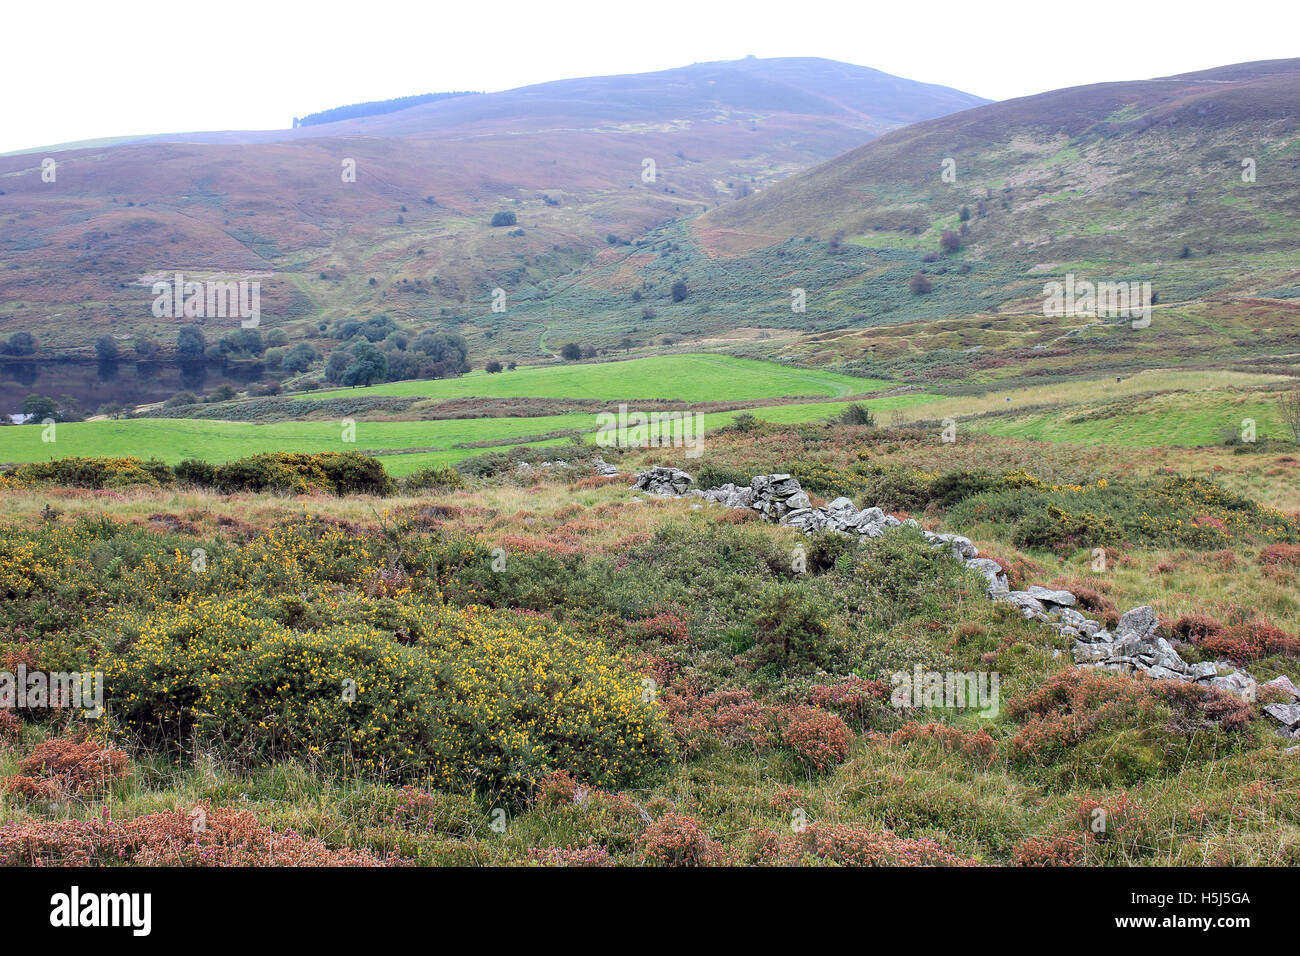 Moorland Scenery Above The Village of Cilcain, The Clwydian Hills With Moel Famau In Distance - Stock Image